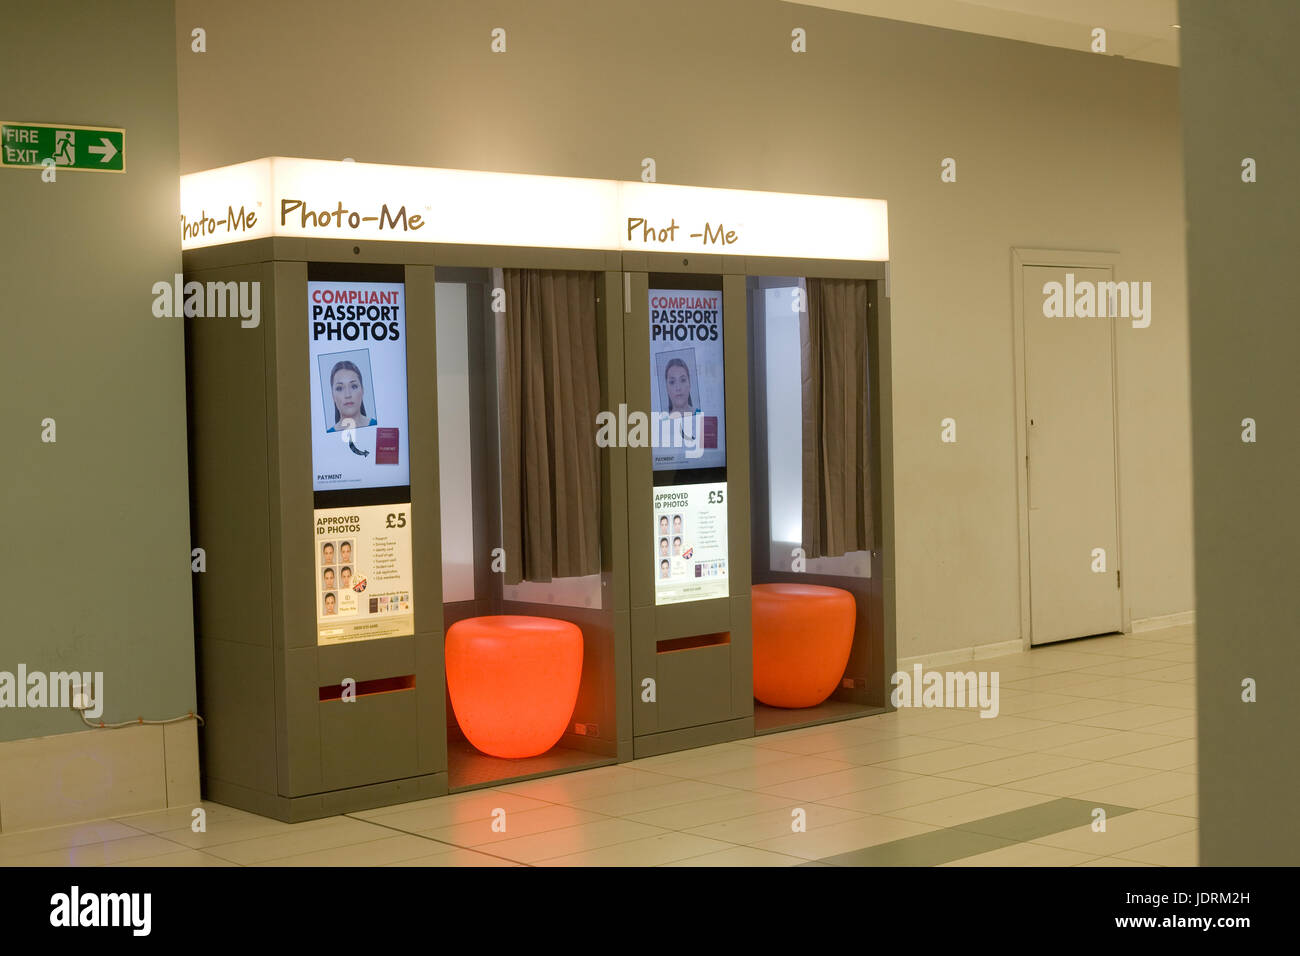 Photo me photo booths in Kennet shopping centre in Newbury - Stock Image